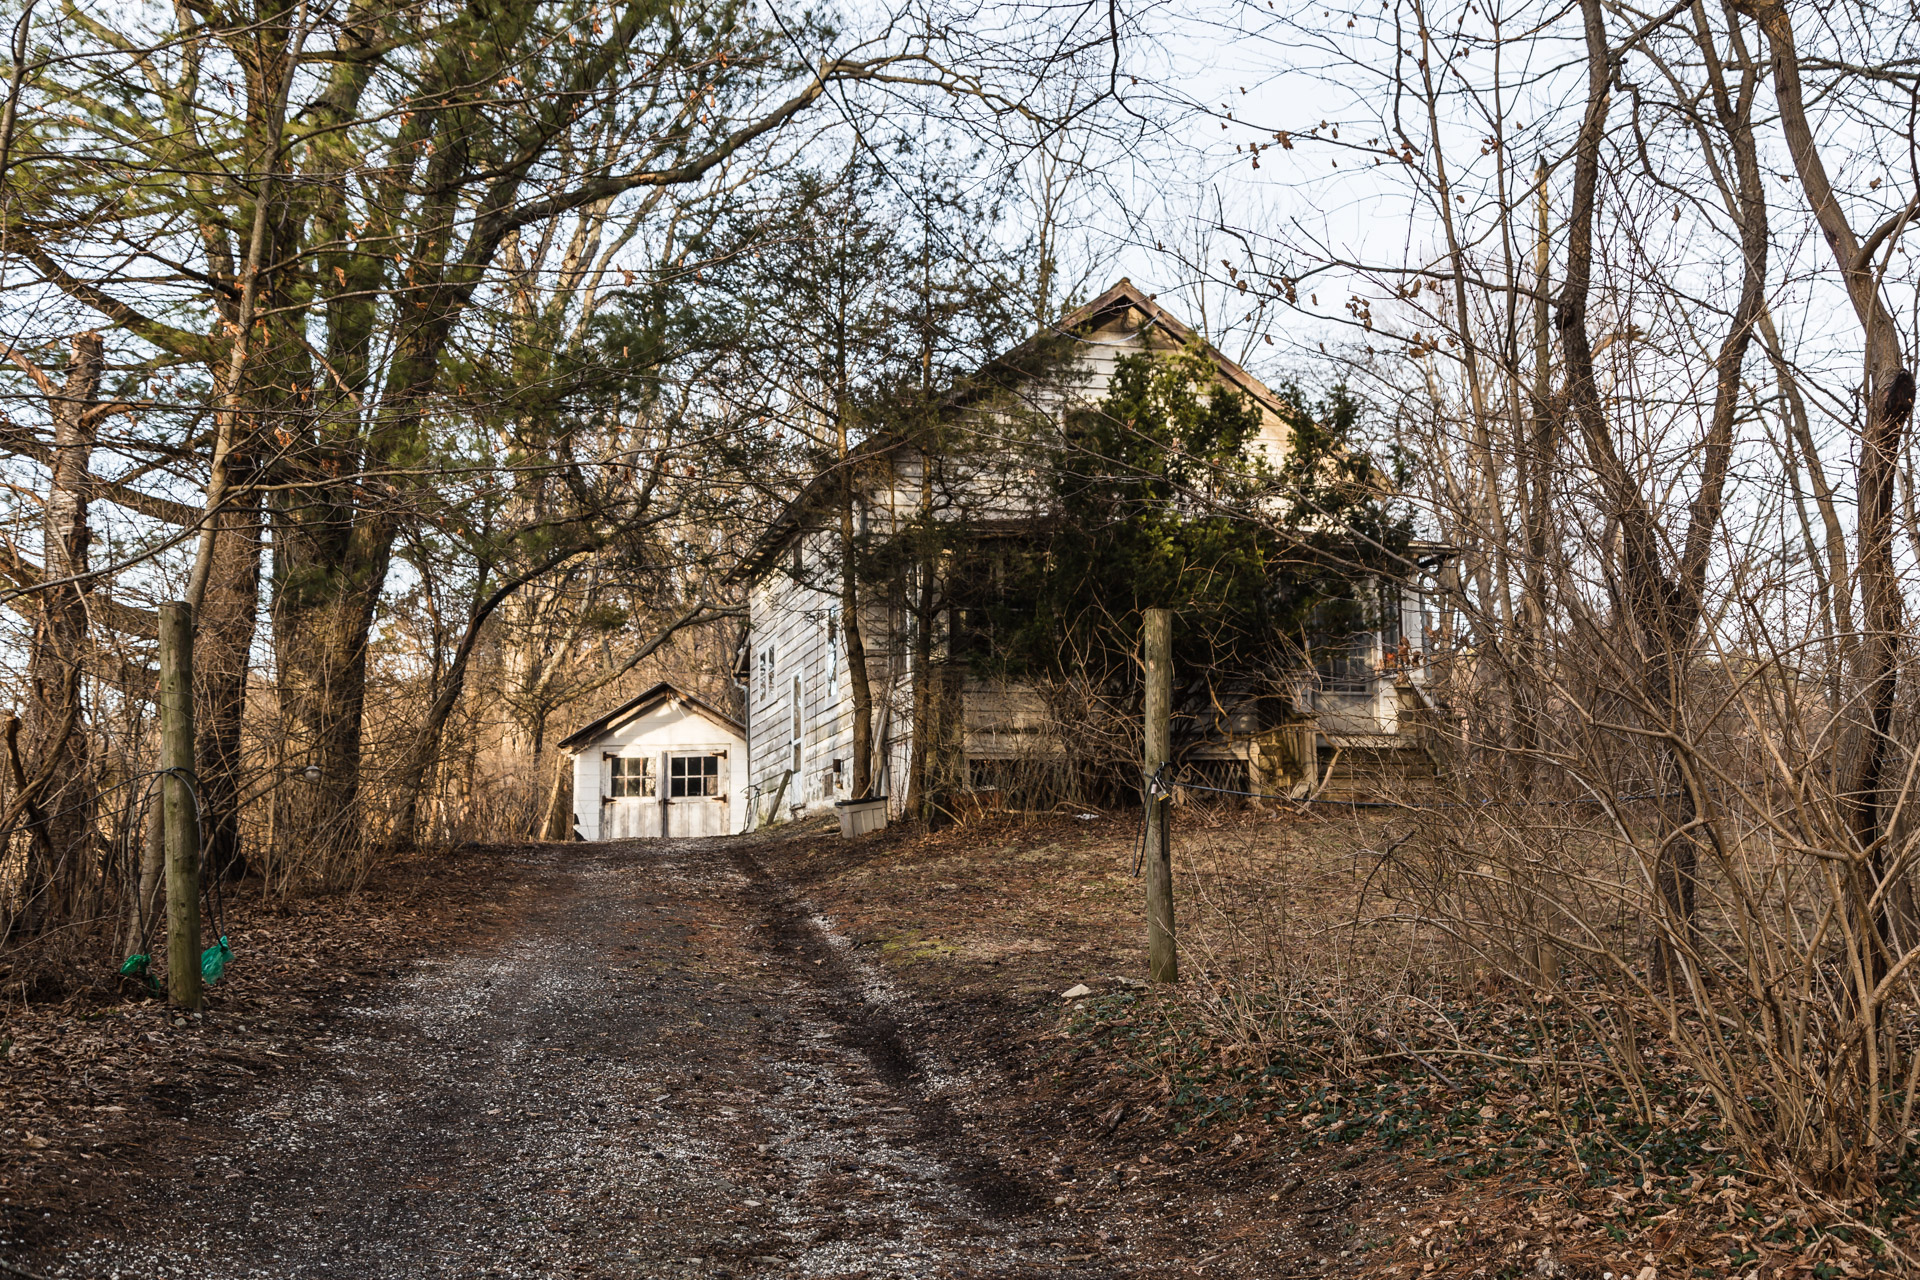 Fredon Township, New Jersey - Invading Tree House